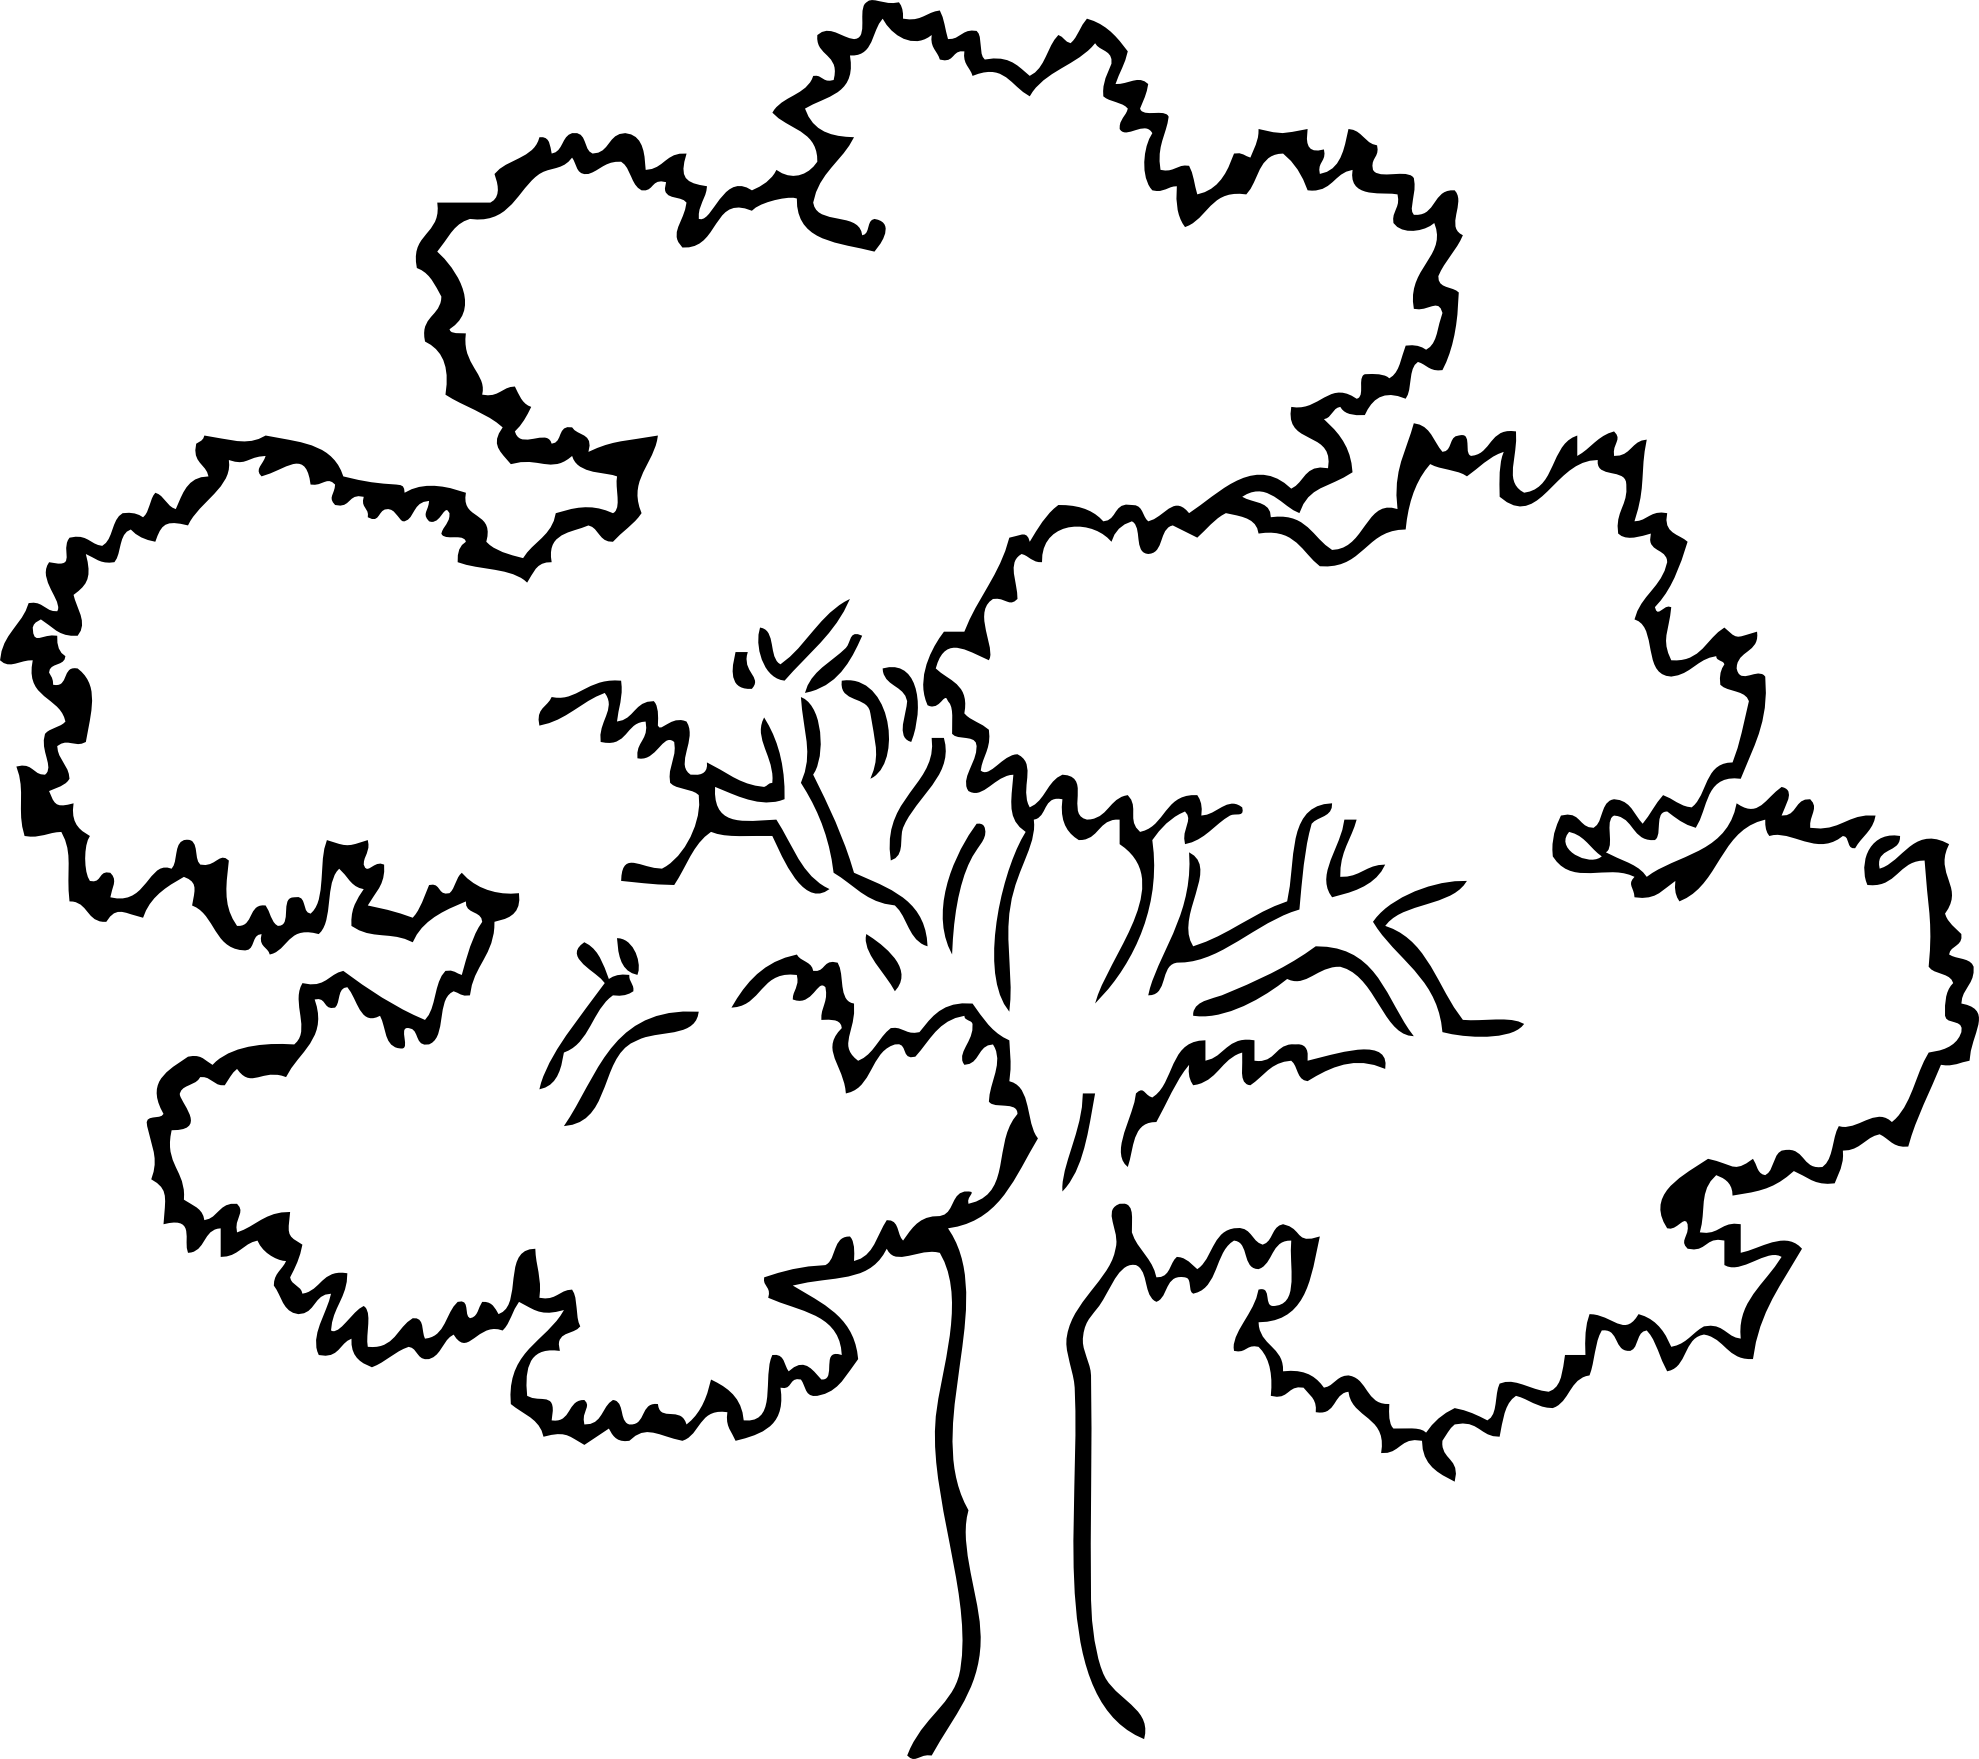 Apple Tree Clipart Black And  - Tree Clip Art Black And White